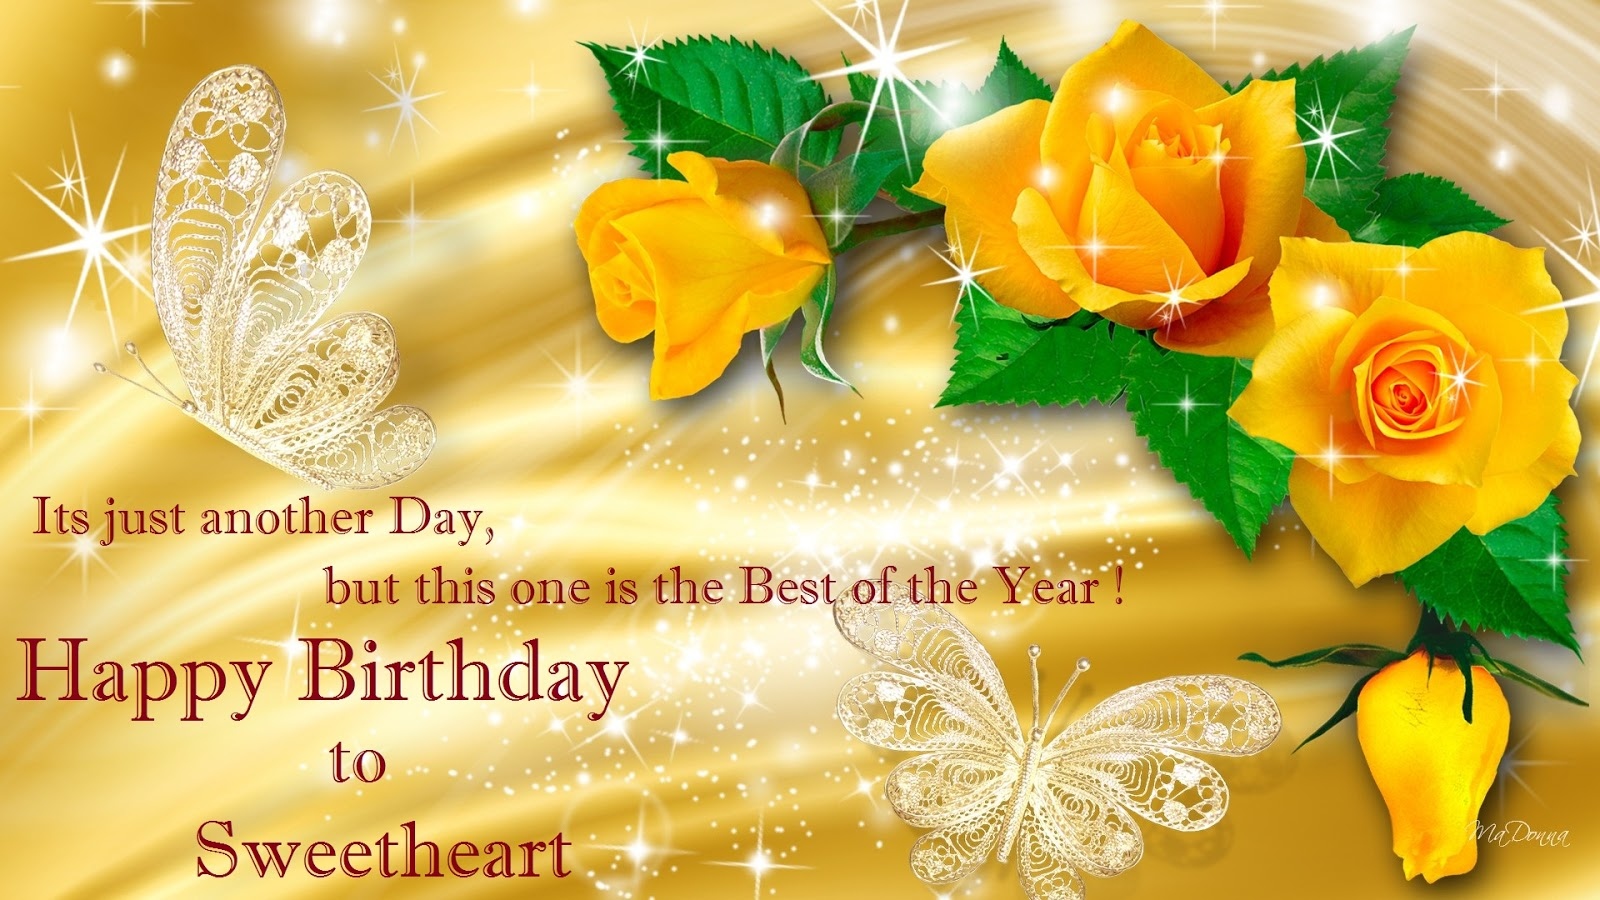 Khushi For Life Birthday Yellow Rose Wishes Cards To Sweetheart Lover